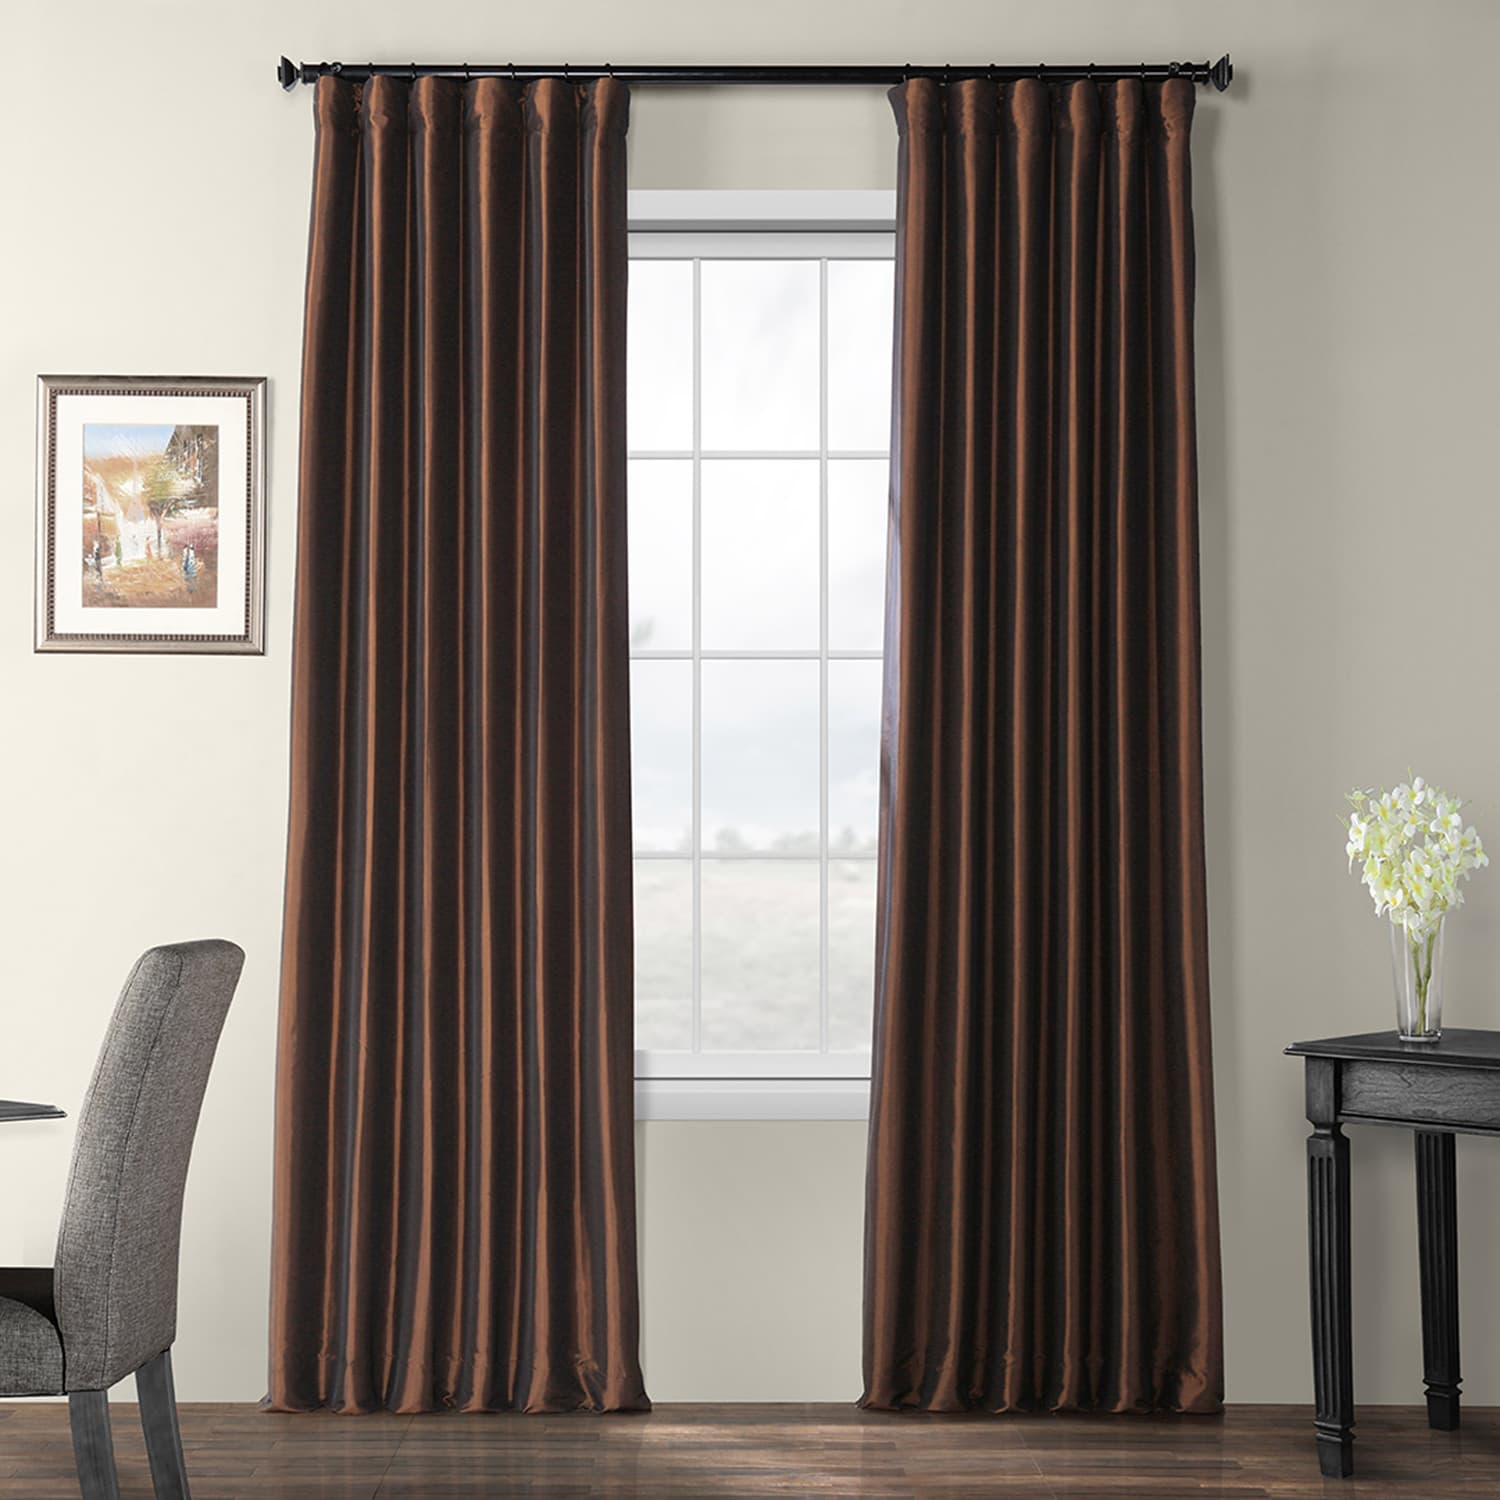 Rum Raisin Blackout Faux Silk Taffeta Curtain